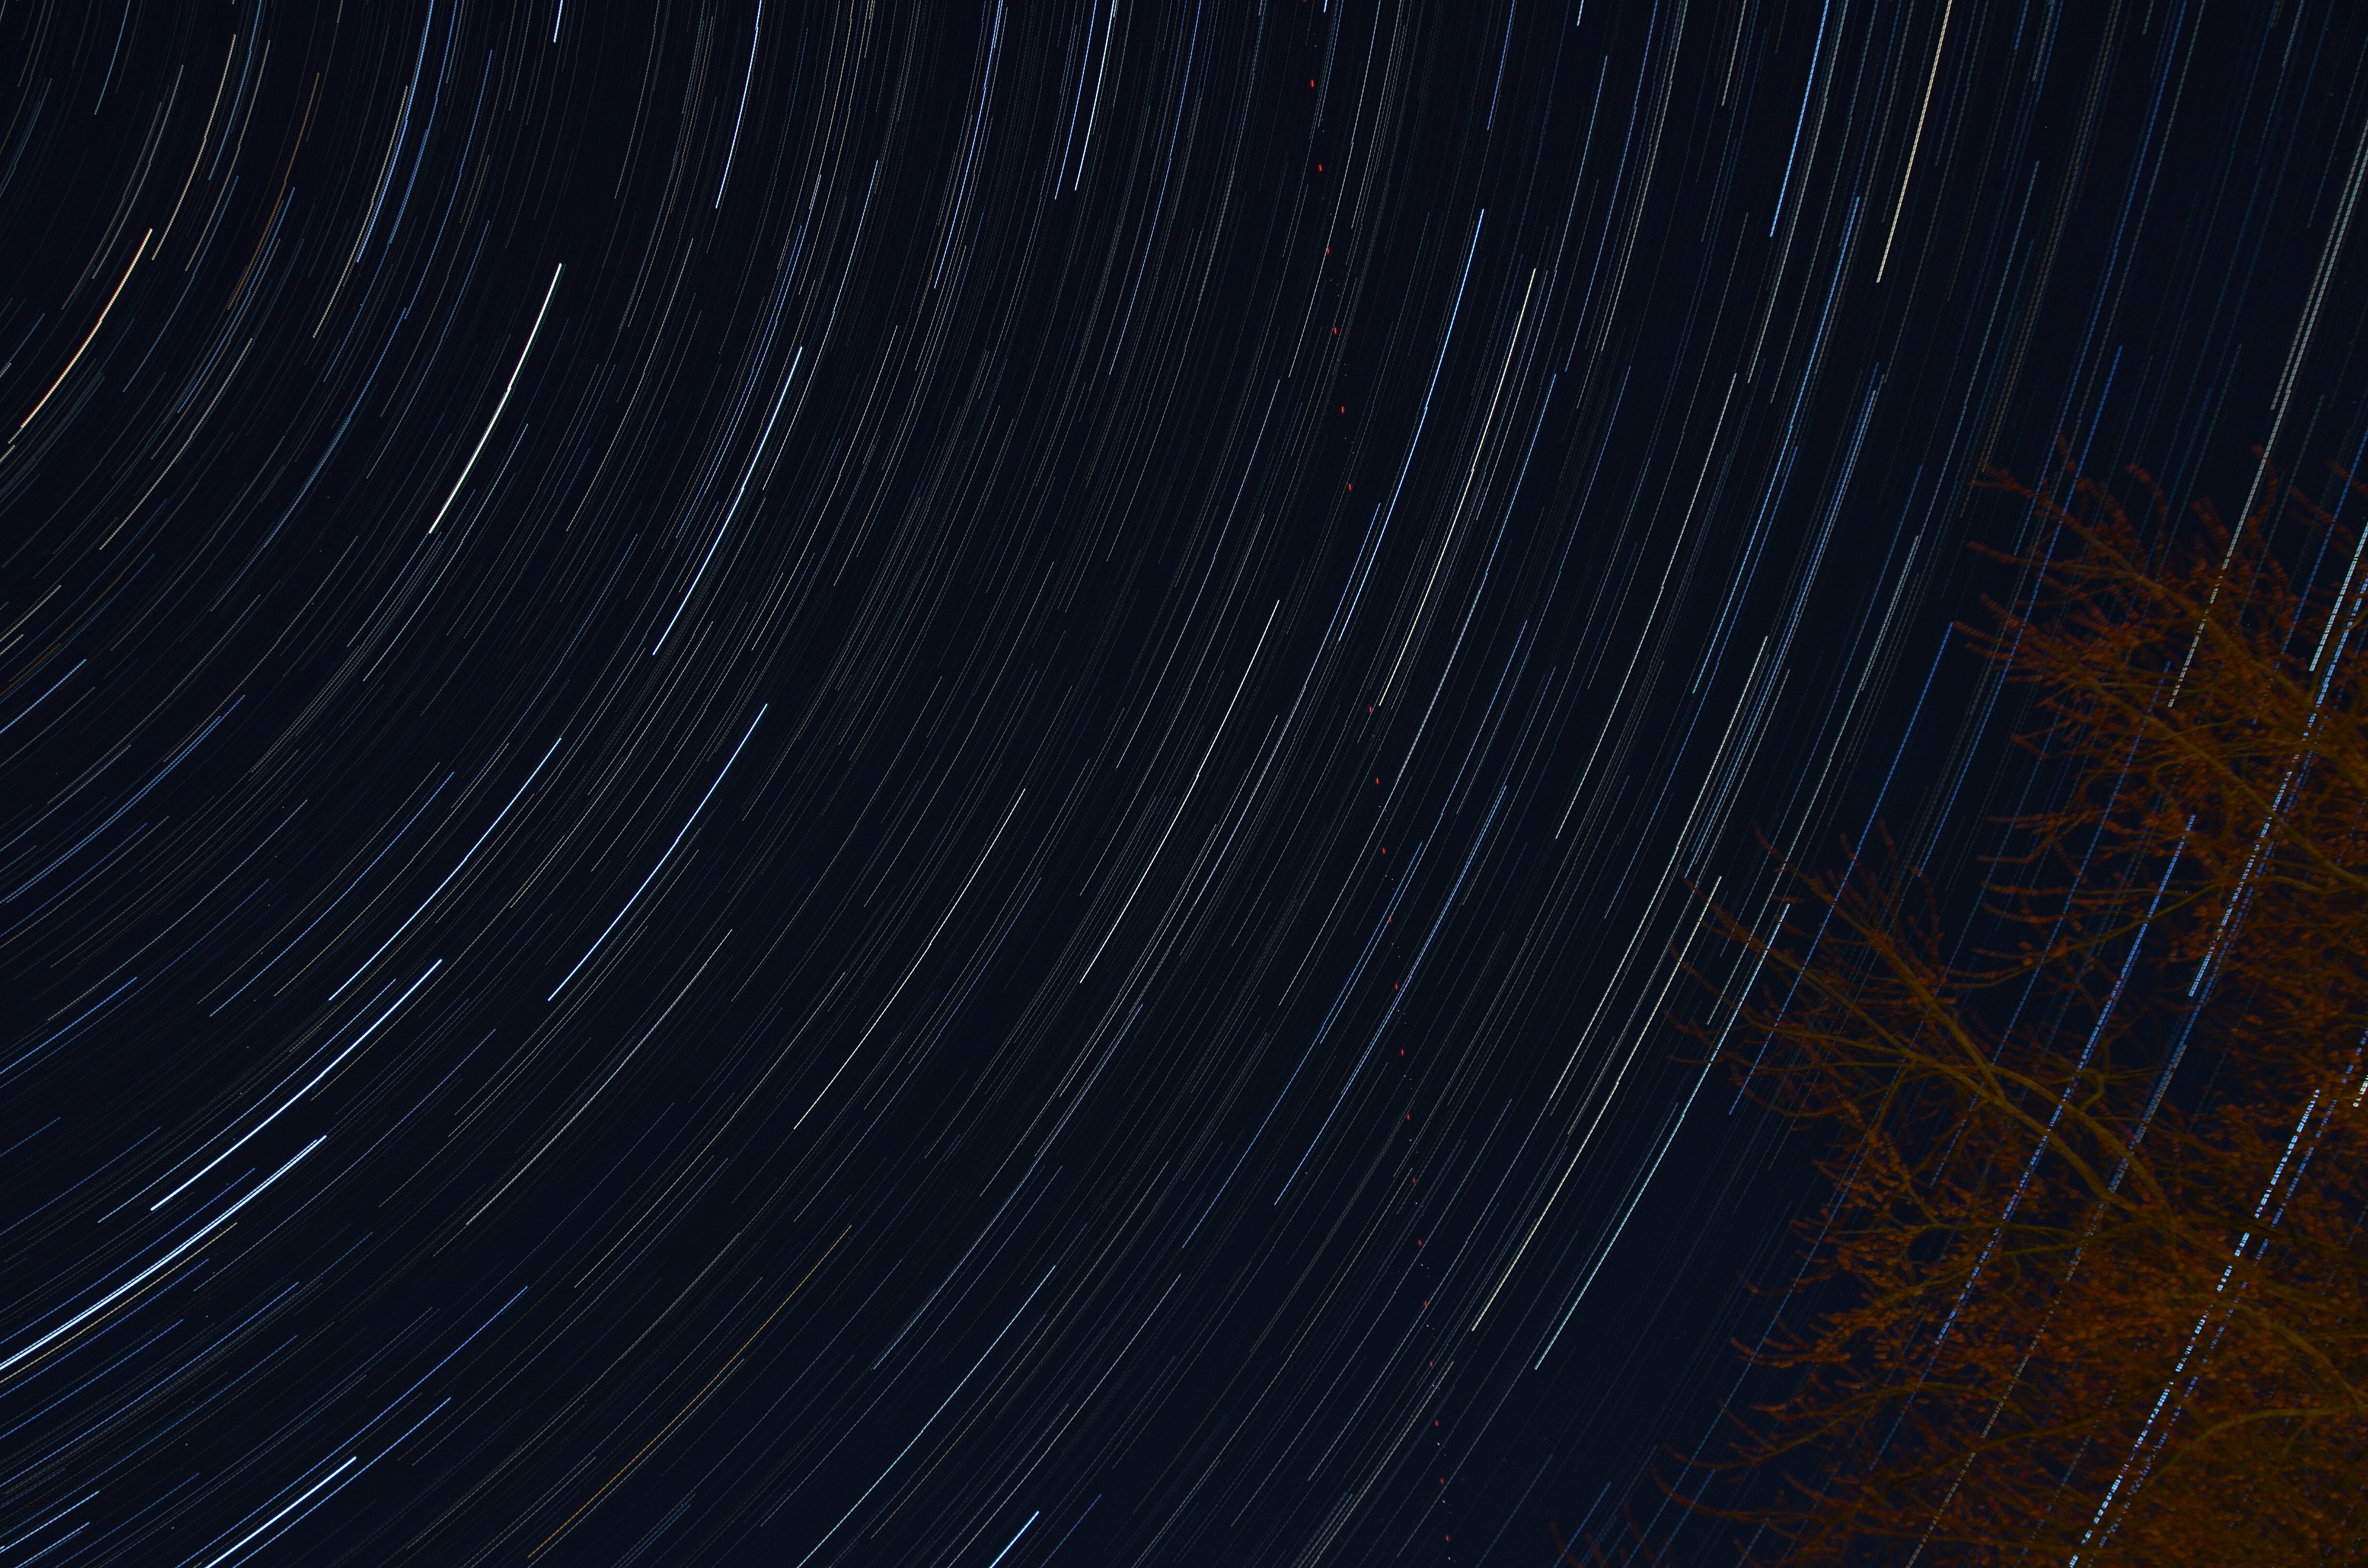 time-lapse photography of stars